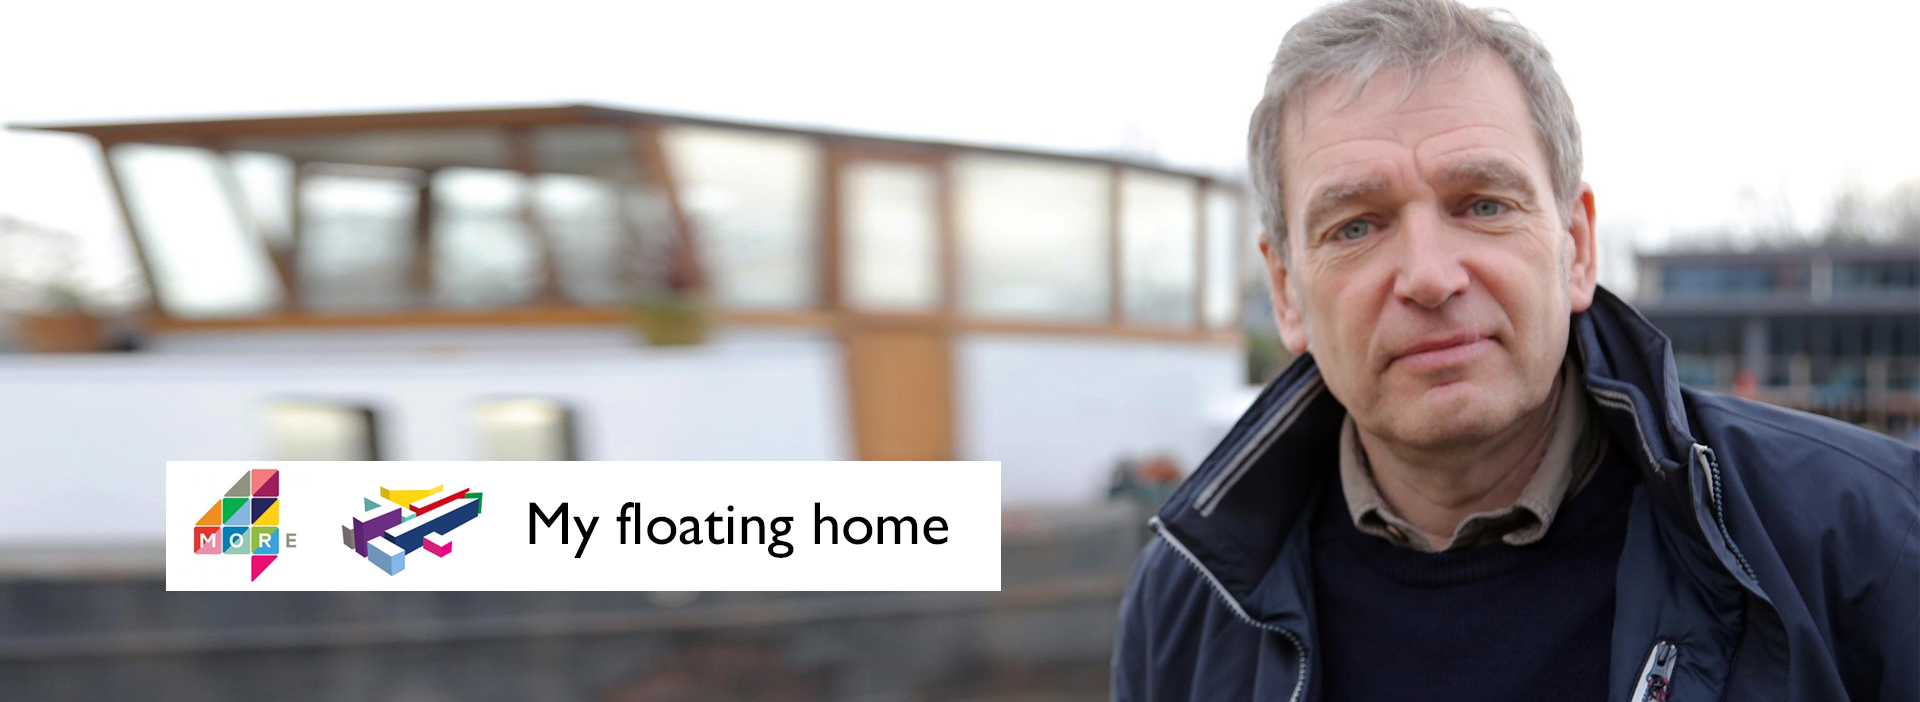 My Floating Home.jpg